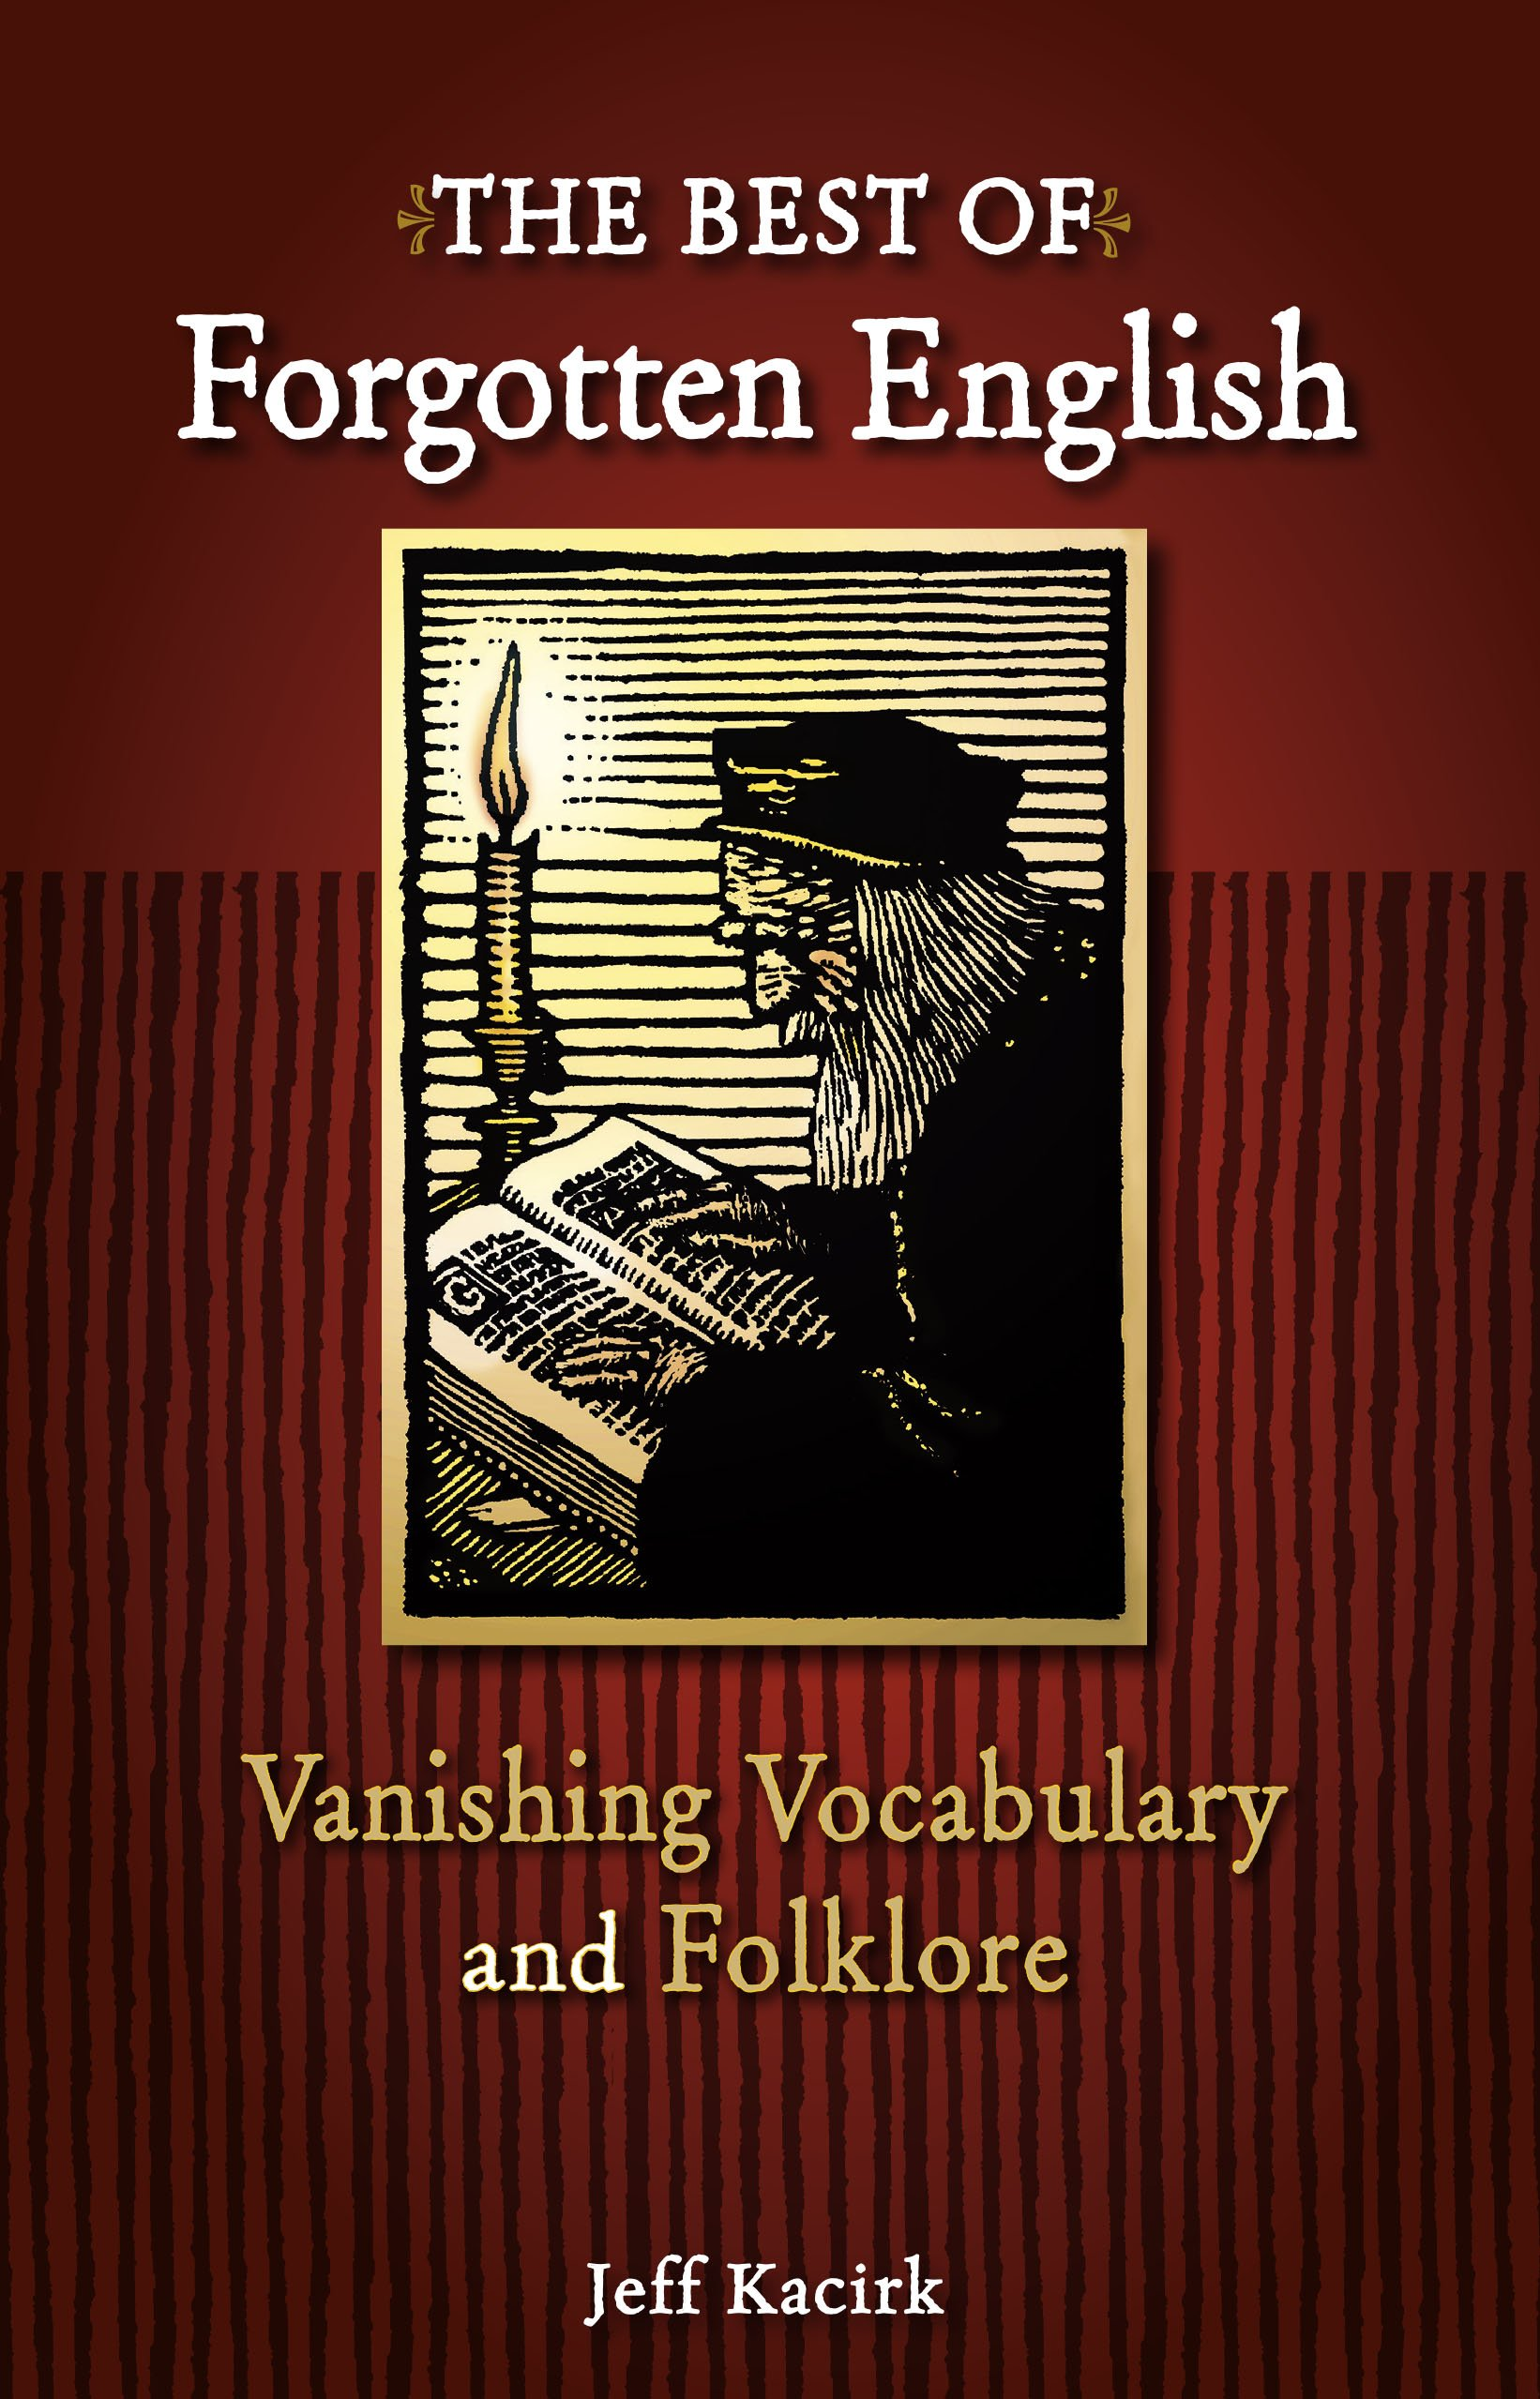 The Best of Forgotten English: Vanishing Vocabulary and Folklore ebook